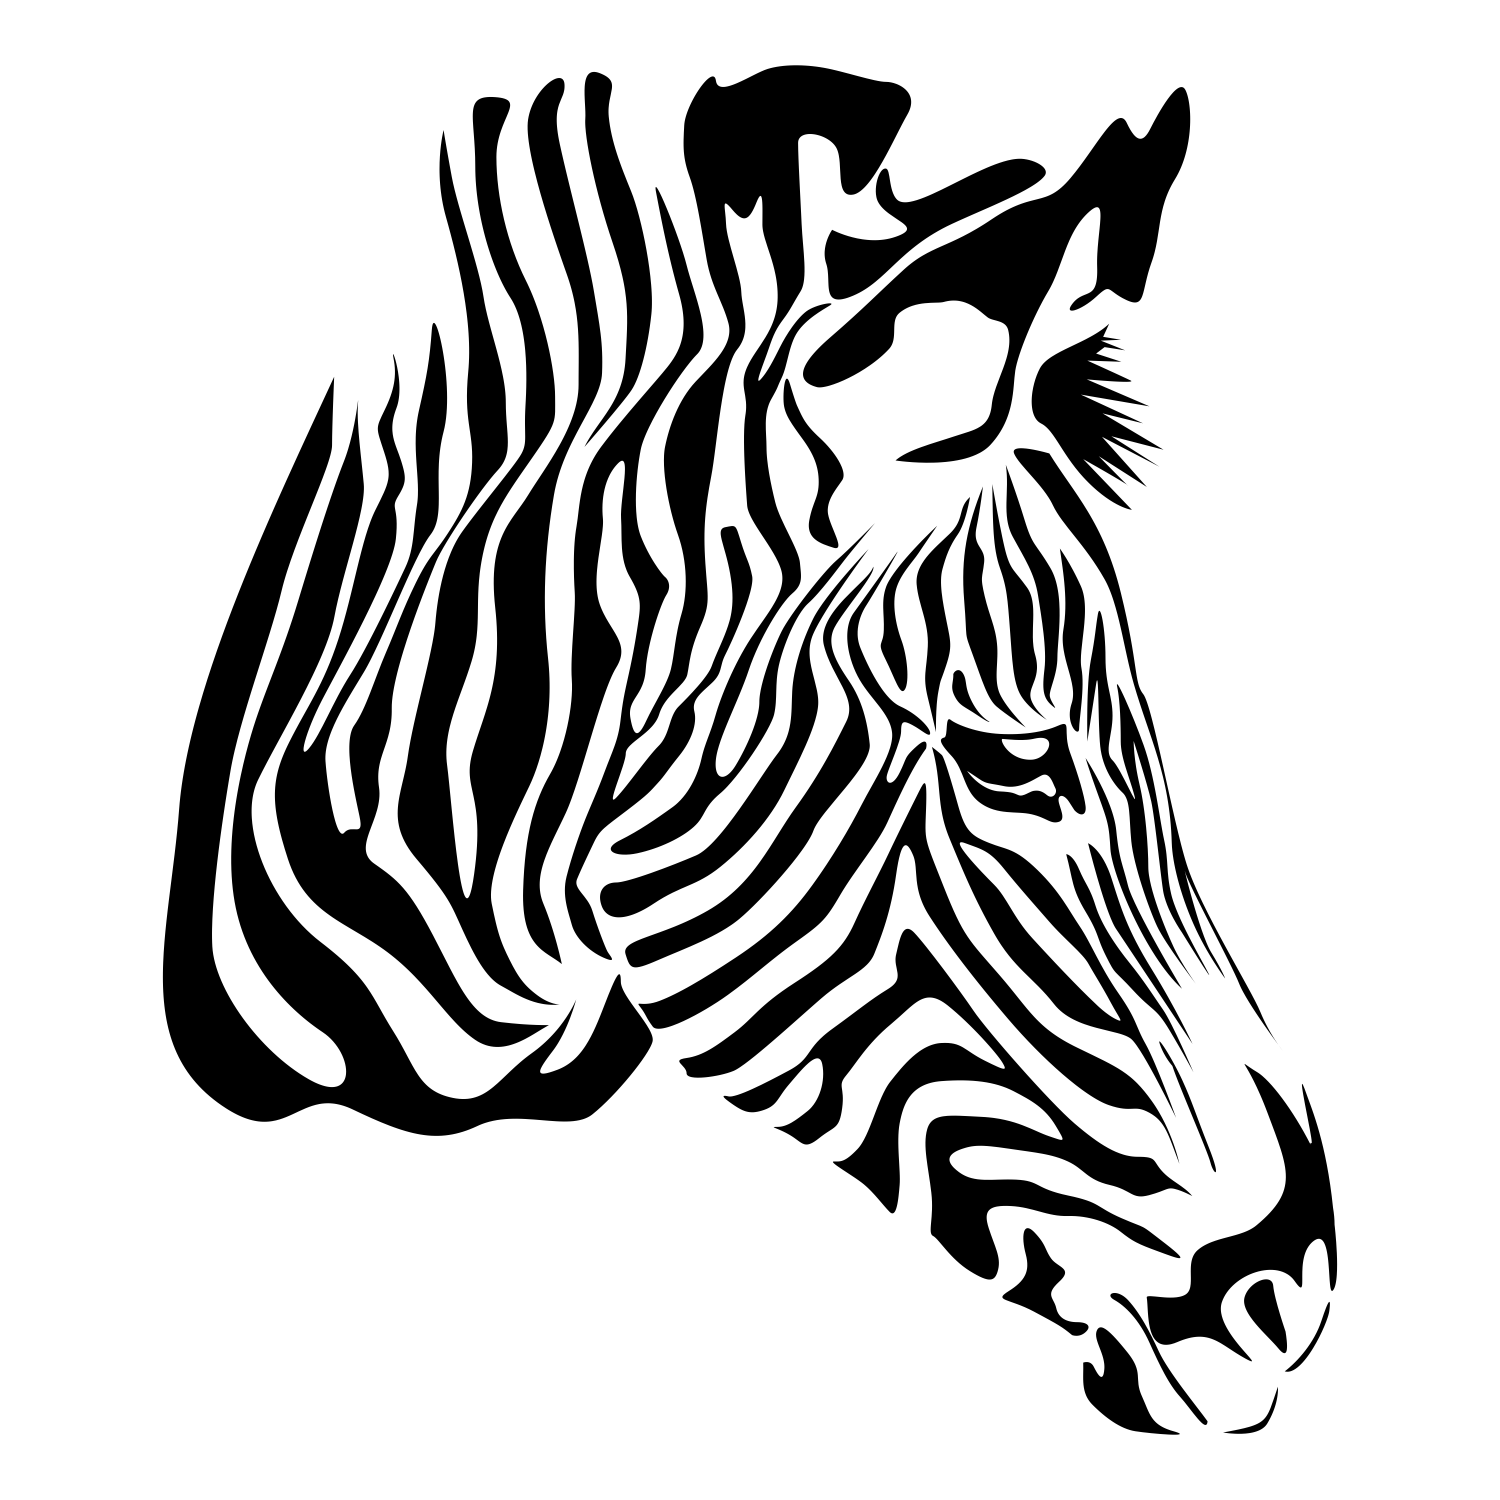 17 Black And White Zebra Vector Images